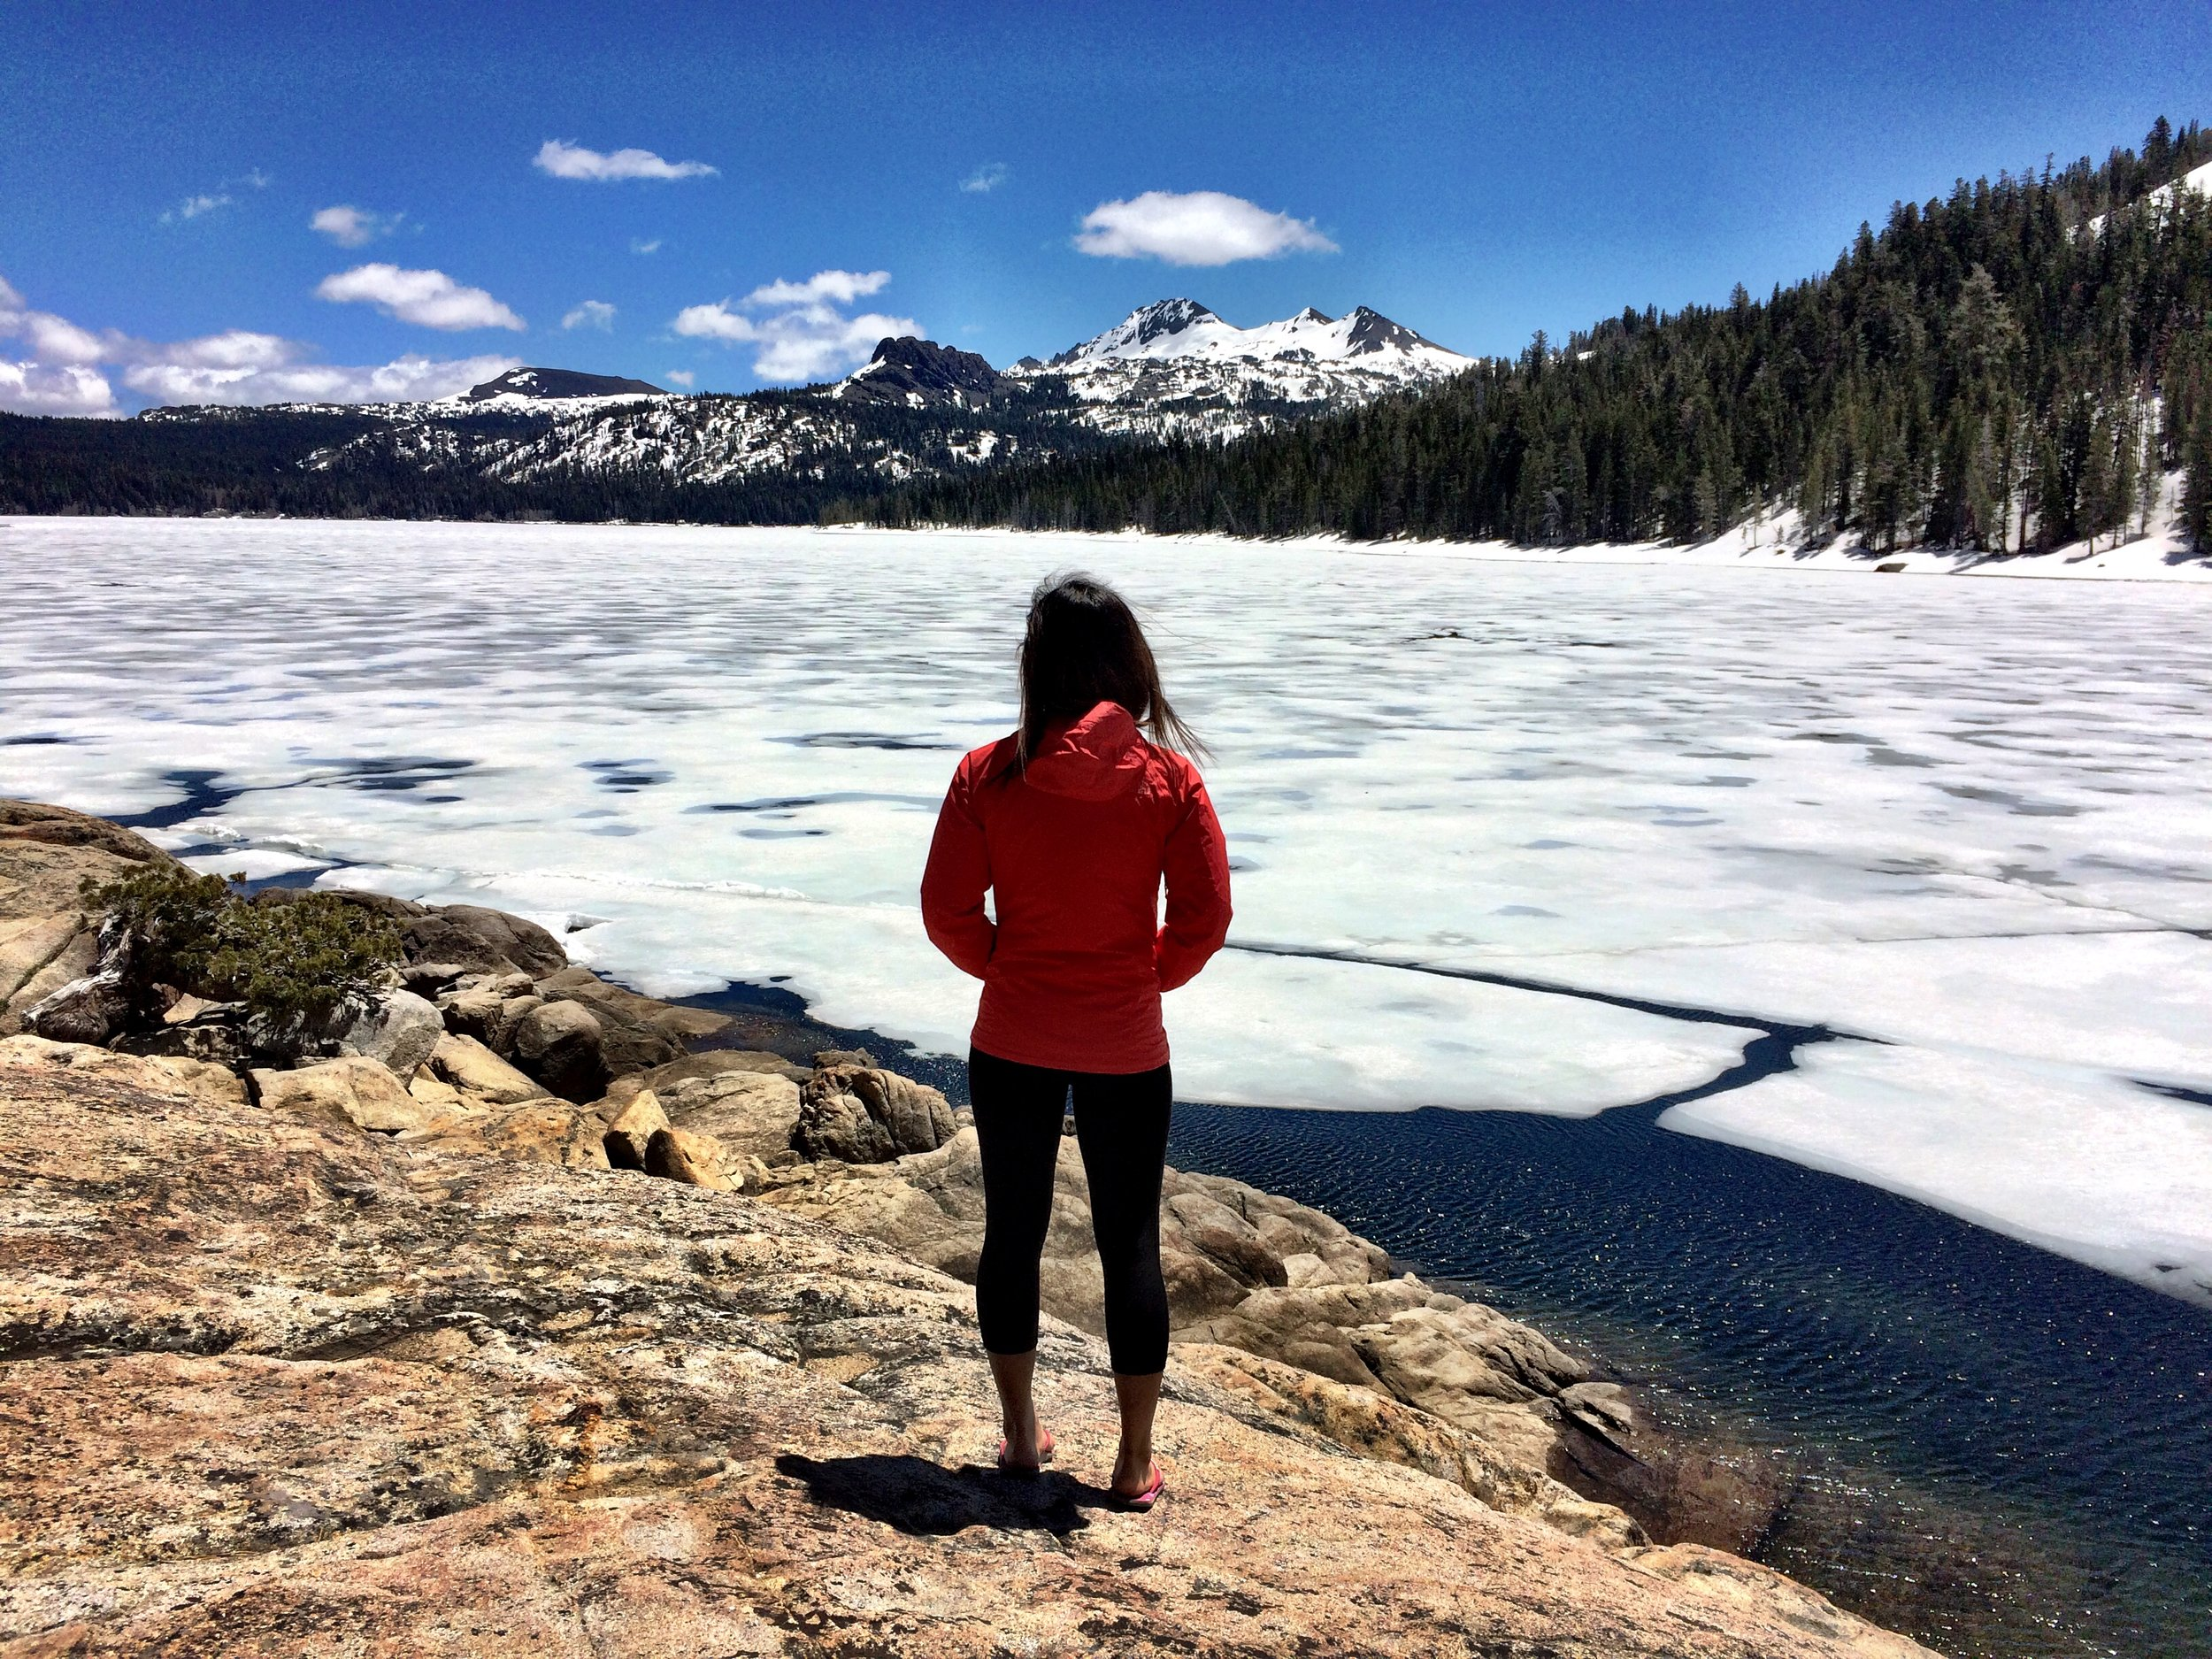 Overlooking the frozen Caples Lake, located some 30 miles south of Lake Tahoe, a popular ice fishing spot in California.